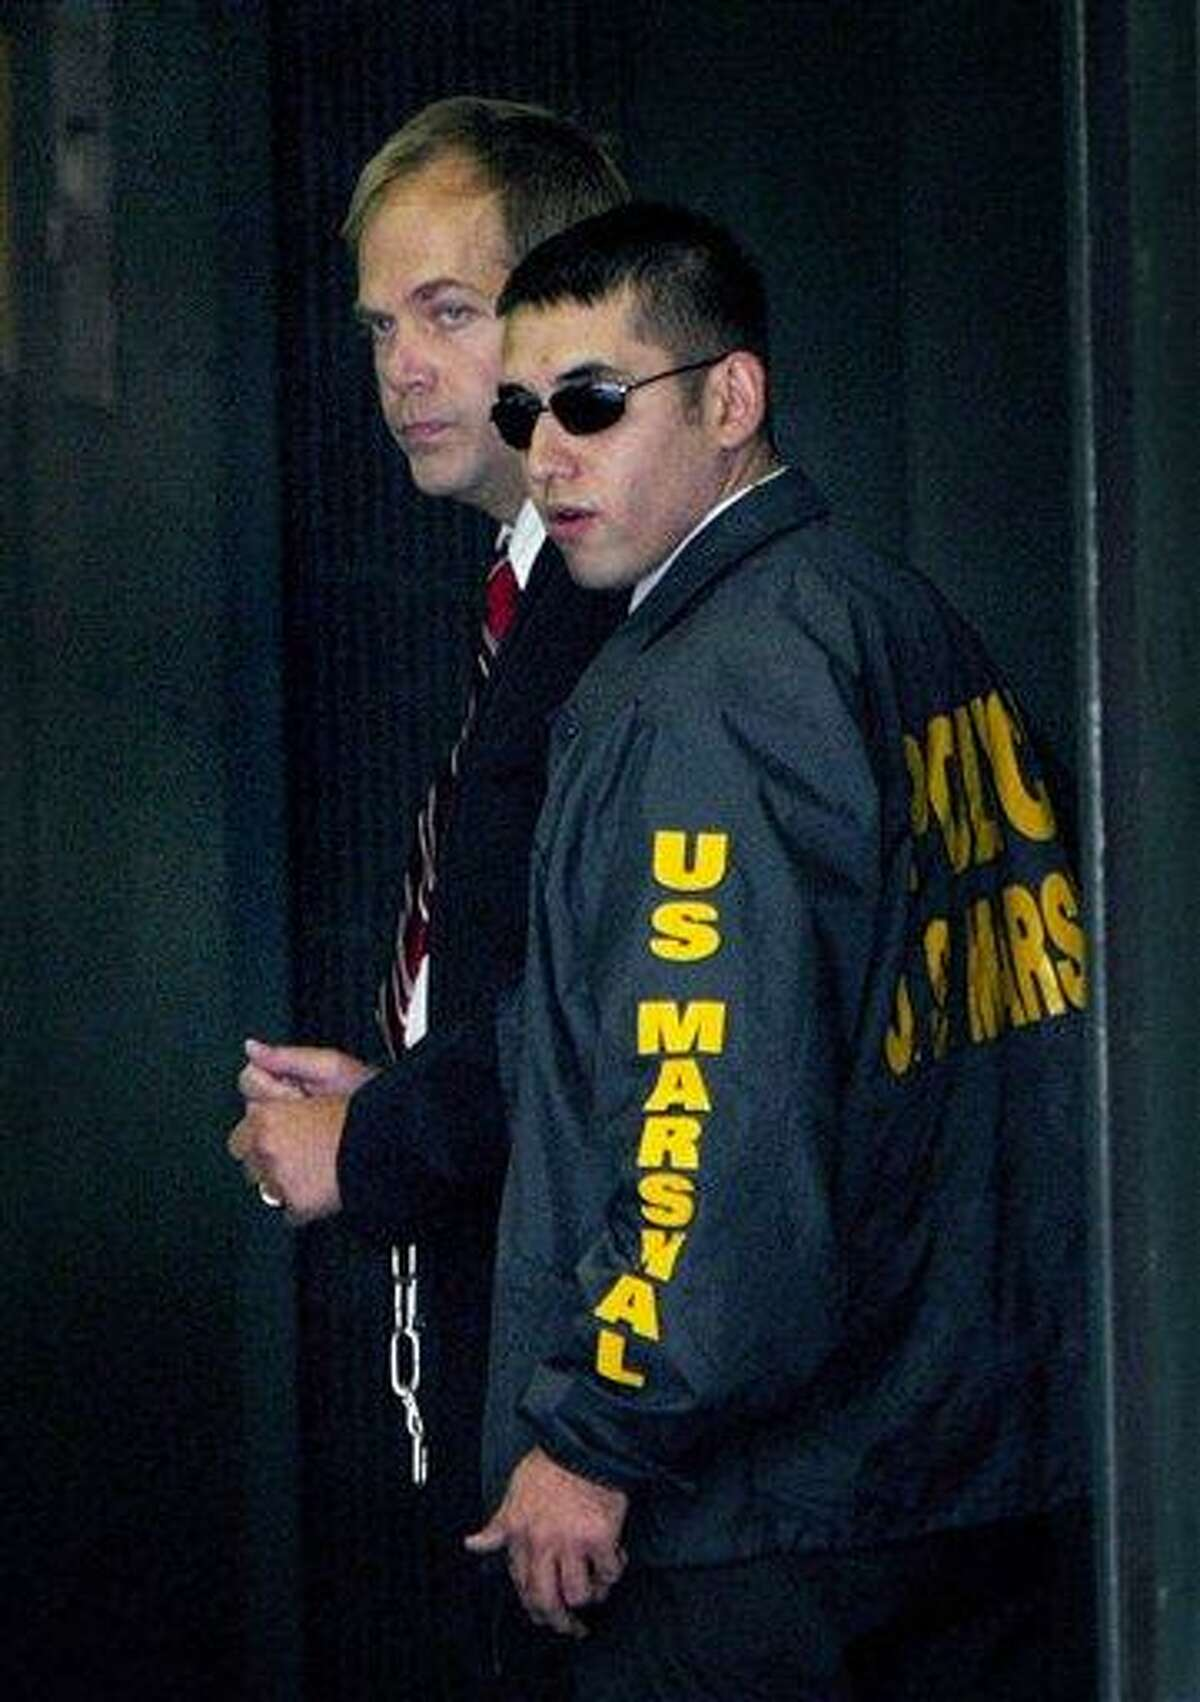 In this Sept. 2, 2003, file photo, John Hinckley, left, who shot President Ronald Reagan in 1981, arrives at Federal Court in Washington guarded by U.S. Marshals. Associated Press